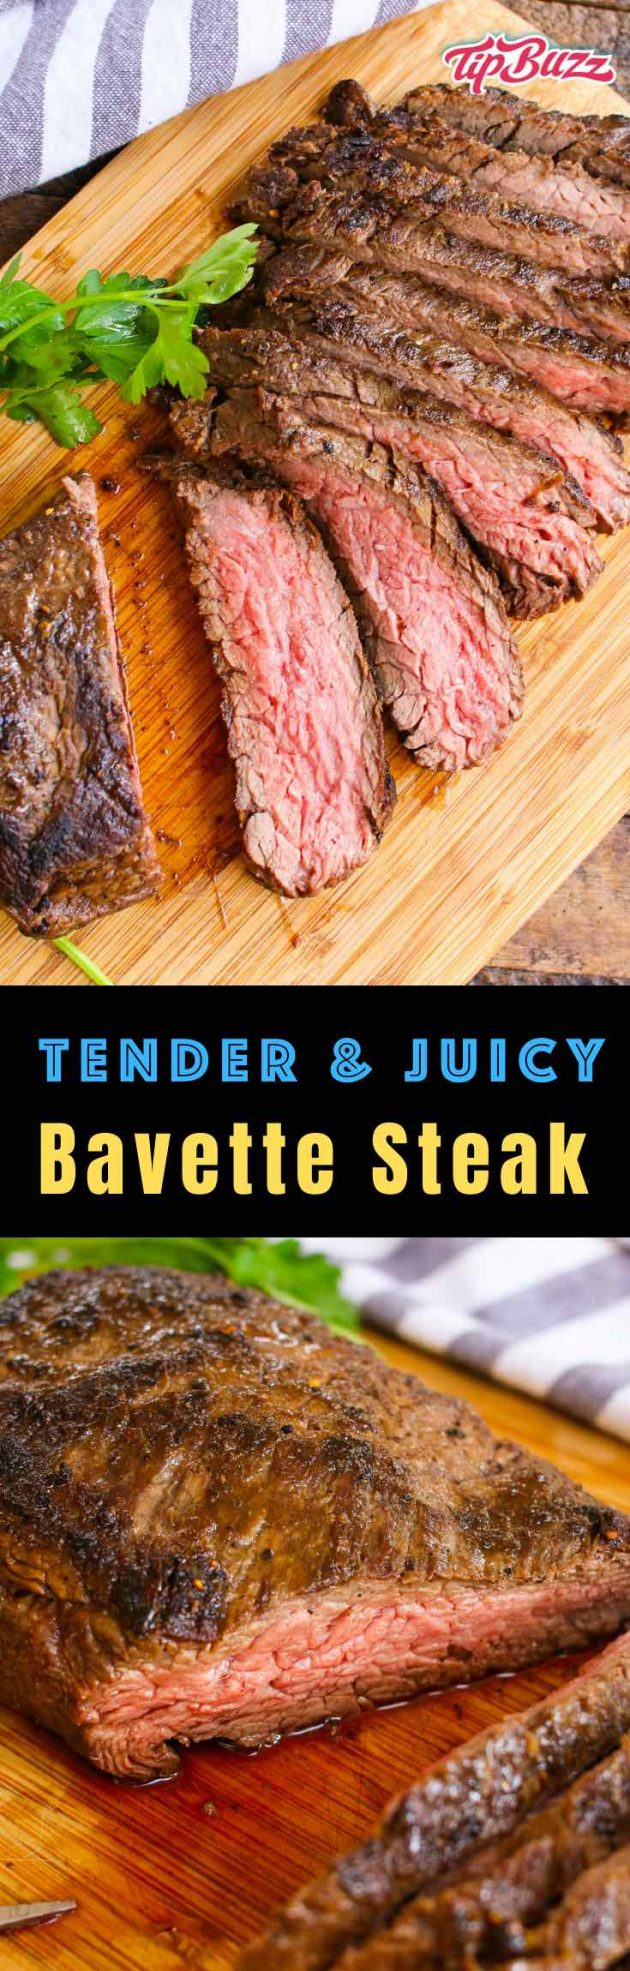 Bavette Steak is a flat cur of beef from the bottom sirloin juicy cut from the bottom sirloin that's tender, juicy and flavorful. You can cook it with or without marinating for a delicious dinner that's easy to prepare and budget friendly! #bavette